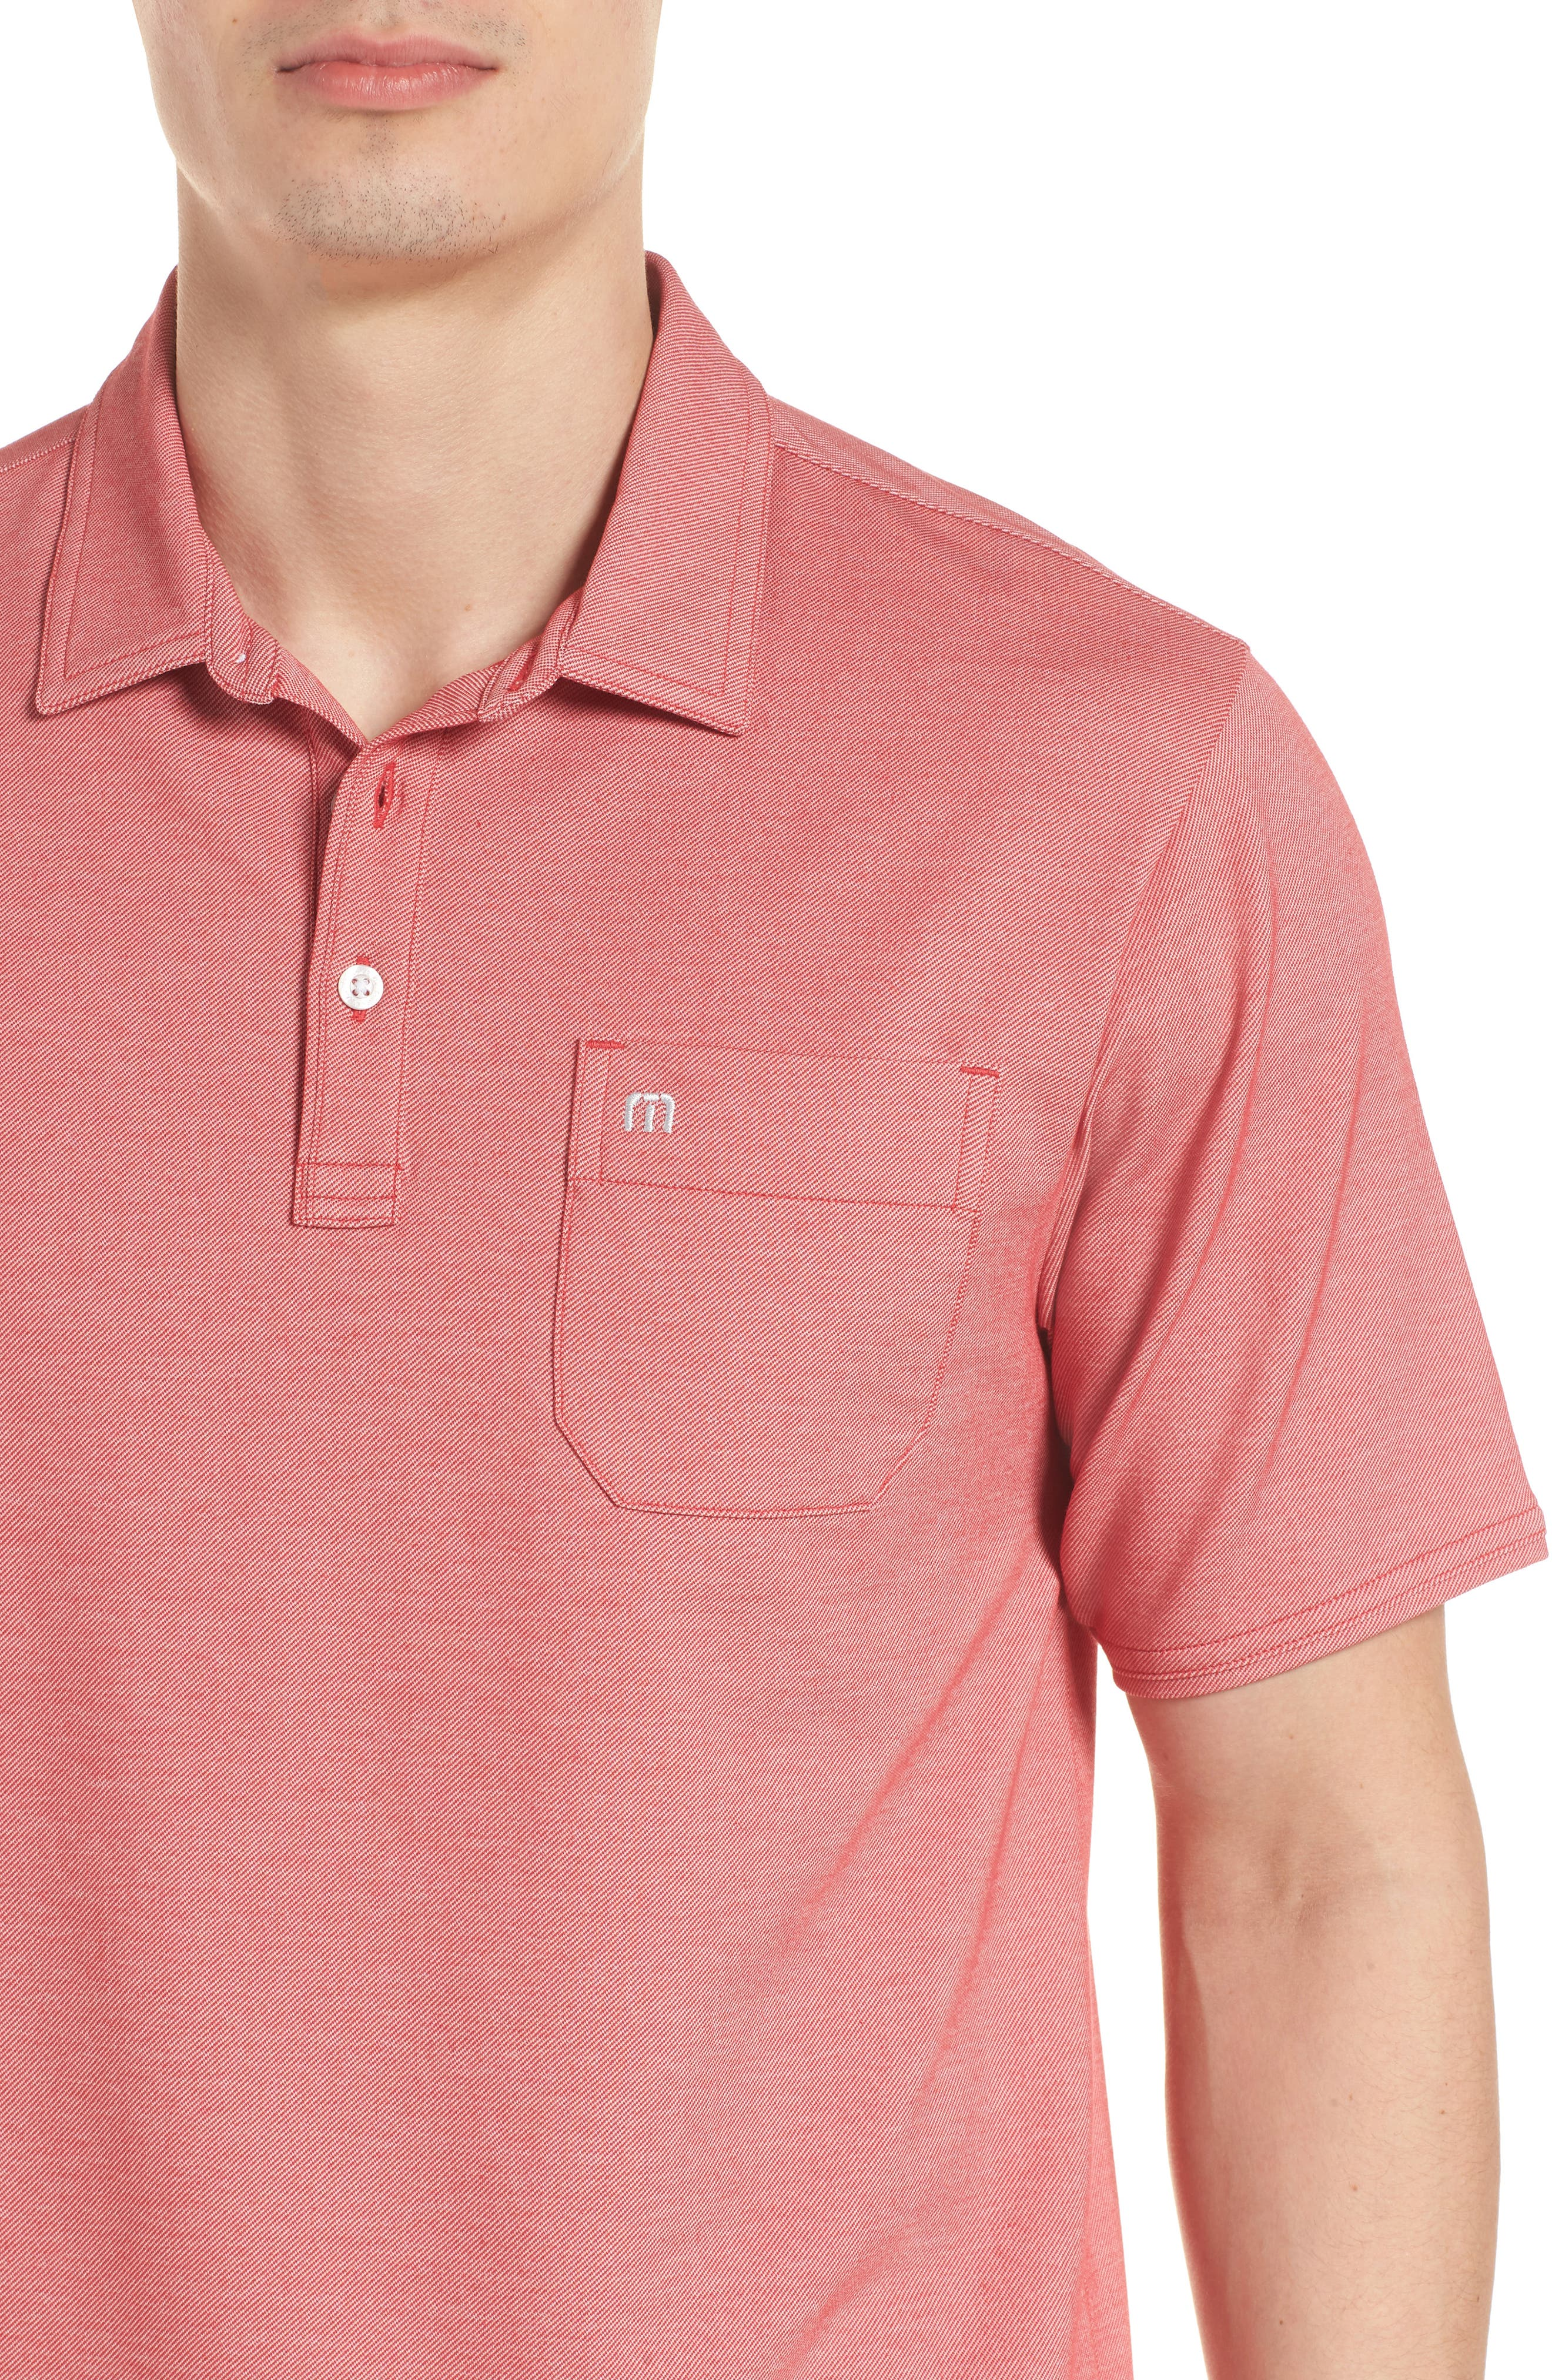 Ledger Polo,                             Alternate thumbnail 4, color,                             600